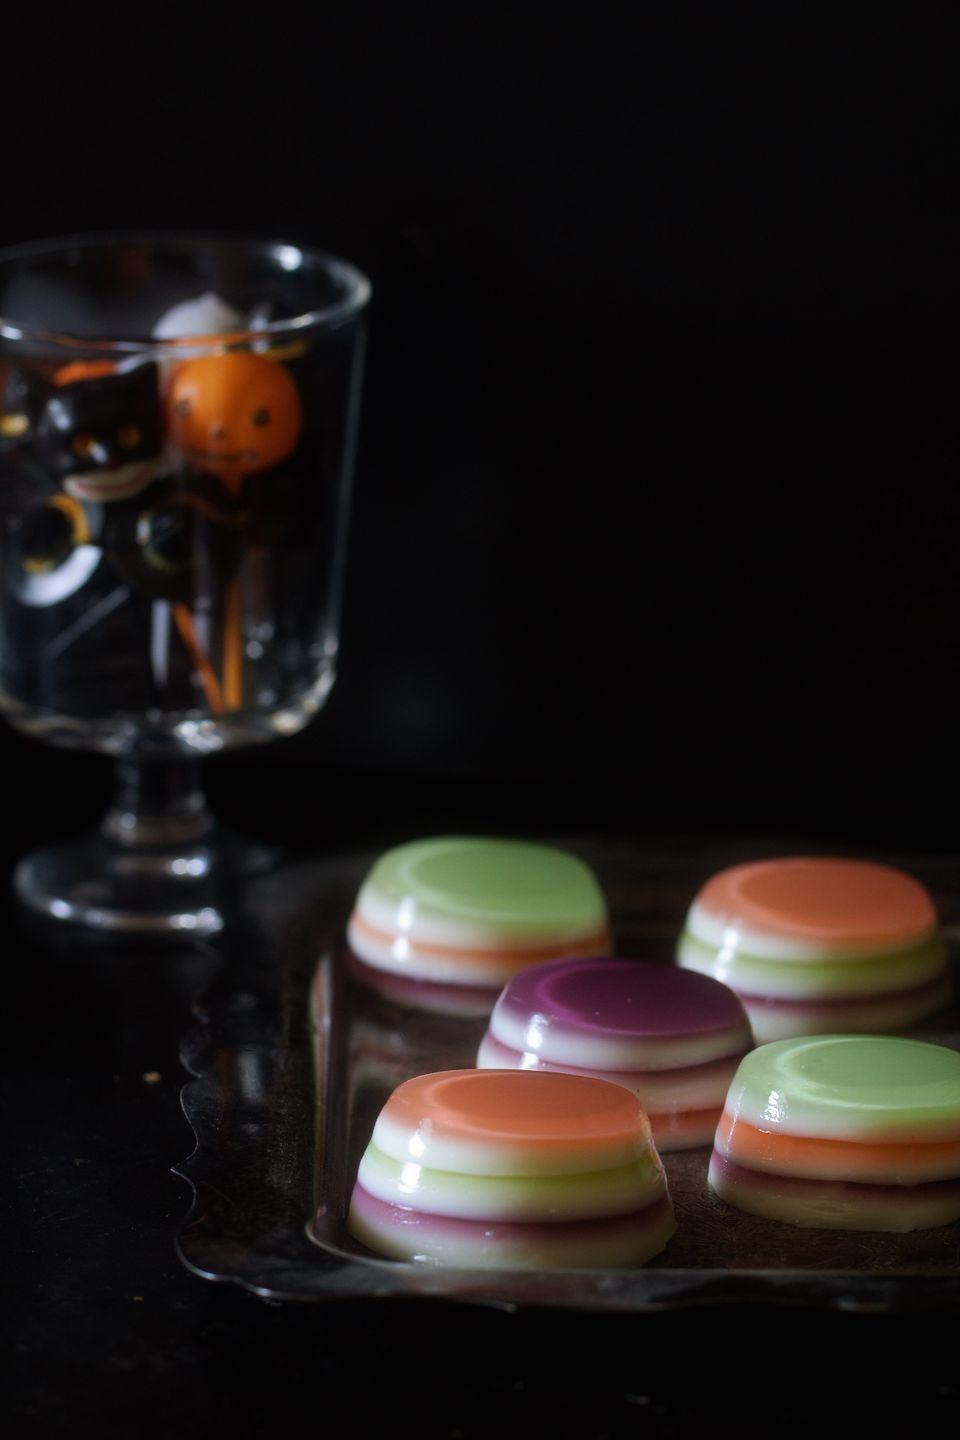 """<p>Get the monster mash started with this boozy treat.</p><p>Get the recipe from <a href=""""https://www.delish.com/cooking/recipe-ideas/recipes/a43941/halloween-jell-o-shots-recipe/"""" rel=""""nofollow noopener"""" target=""""_blank"""" data-ylk=""""slk:Delish"""" class=""""link rapid-noclick-resp"""">Delish</a>.</p>"""